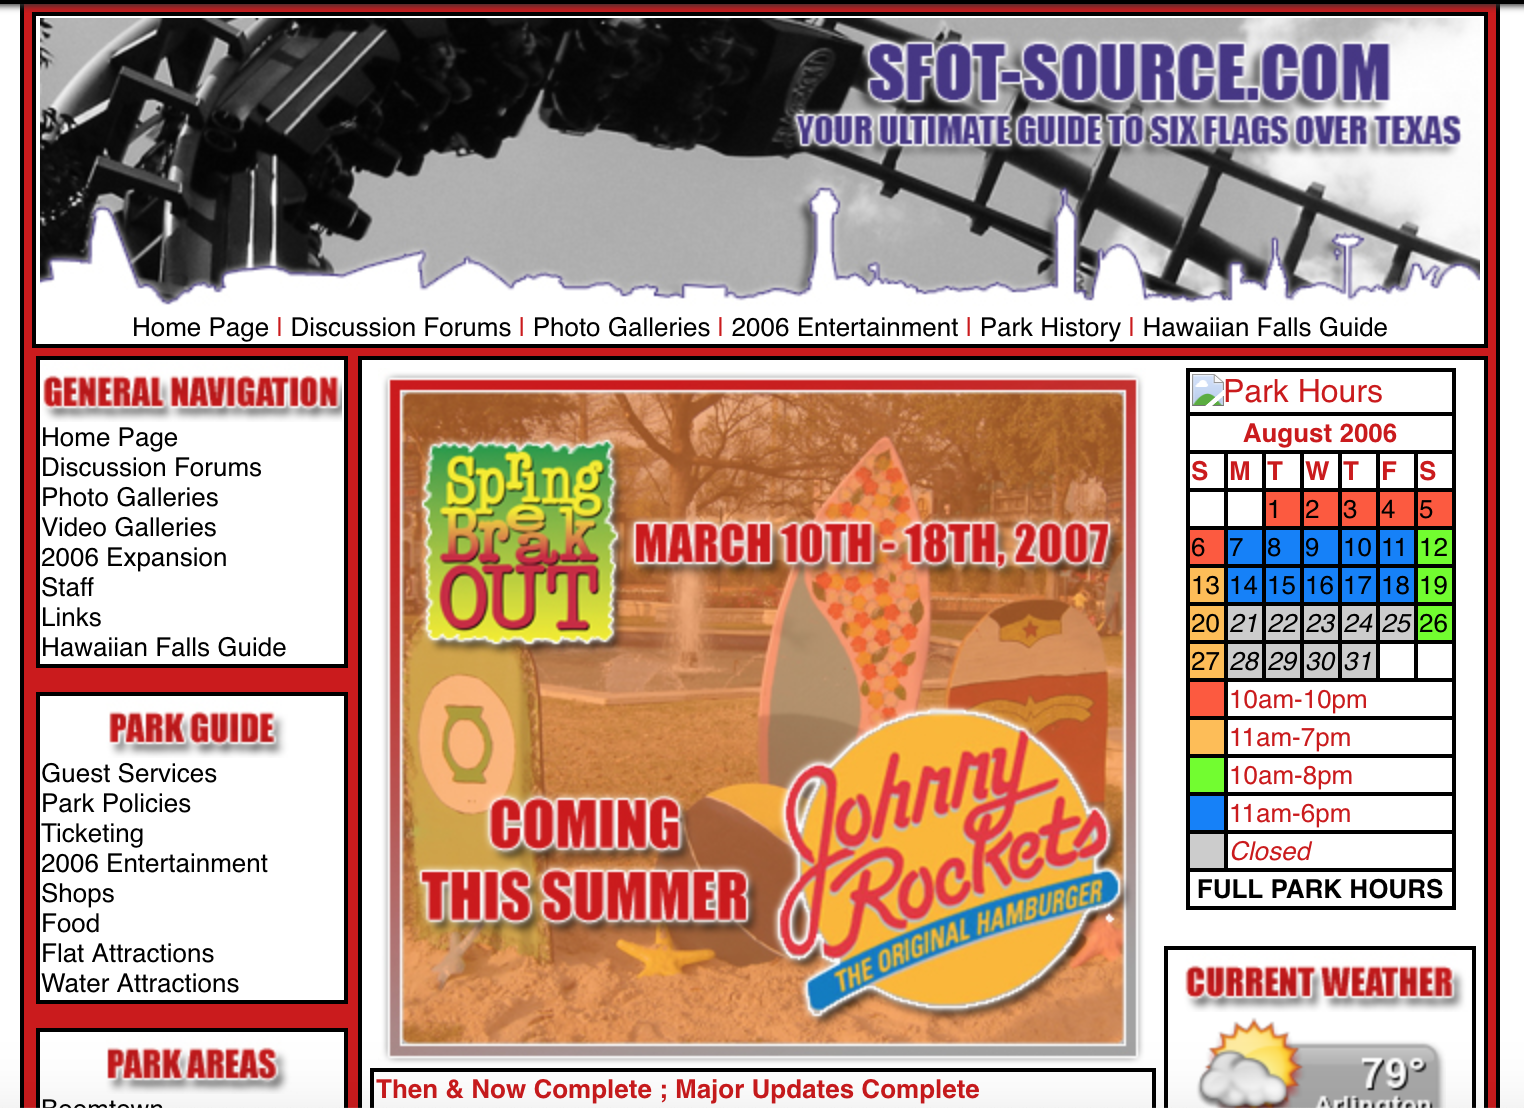 A look at SFOT Source from summer of 2007.